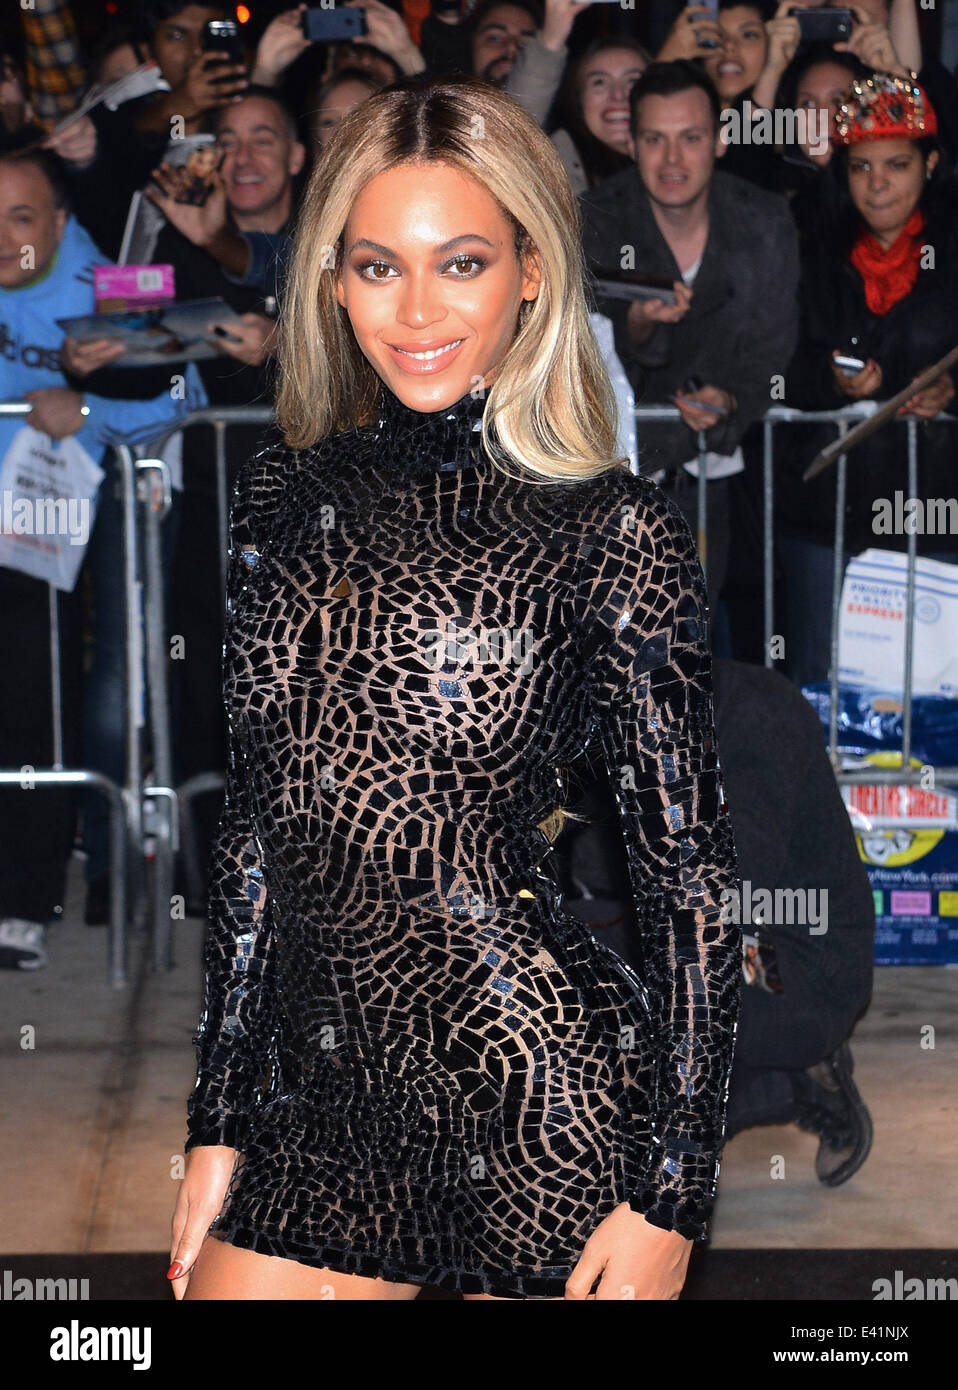 Beyonce Wowed Her Fans Stock Photos Beyonce Wowed Her Fans Stock